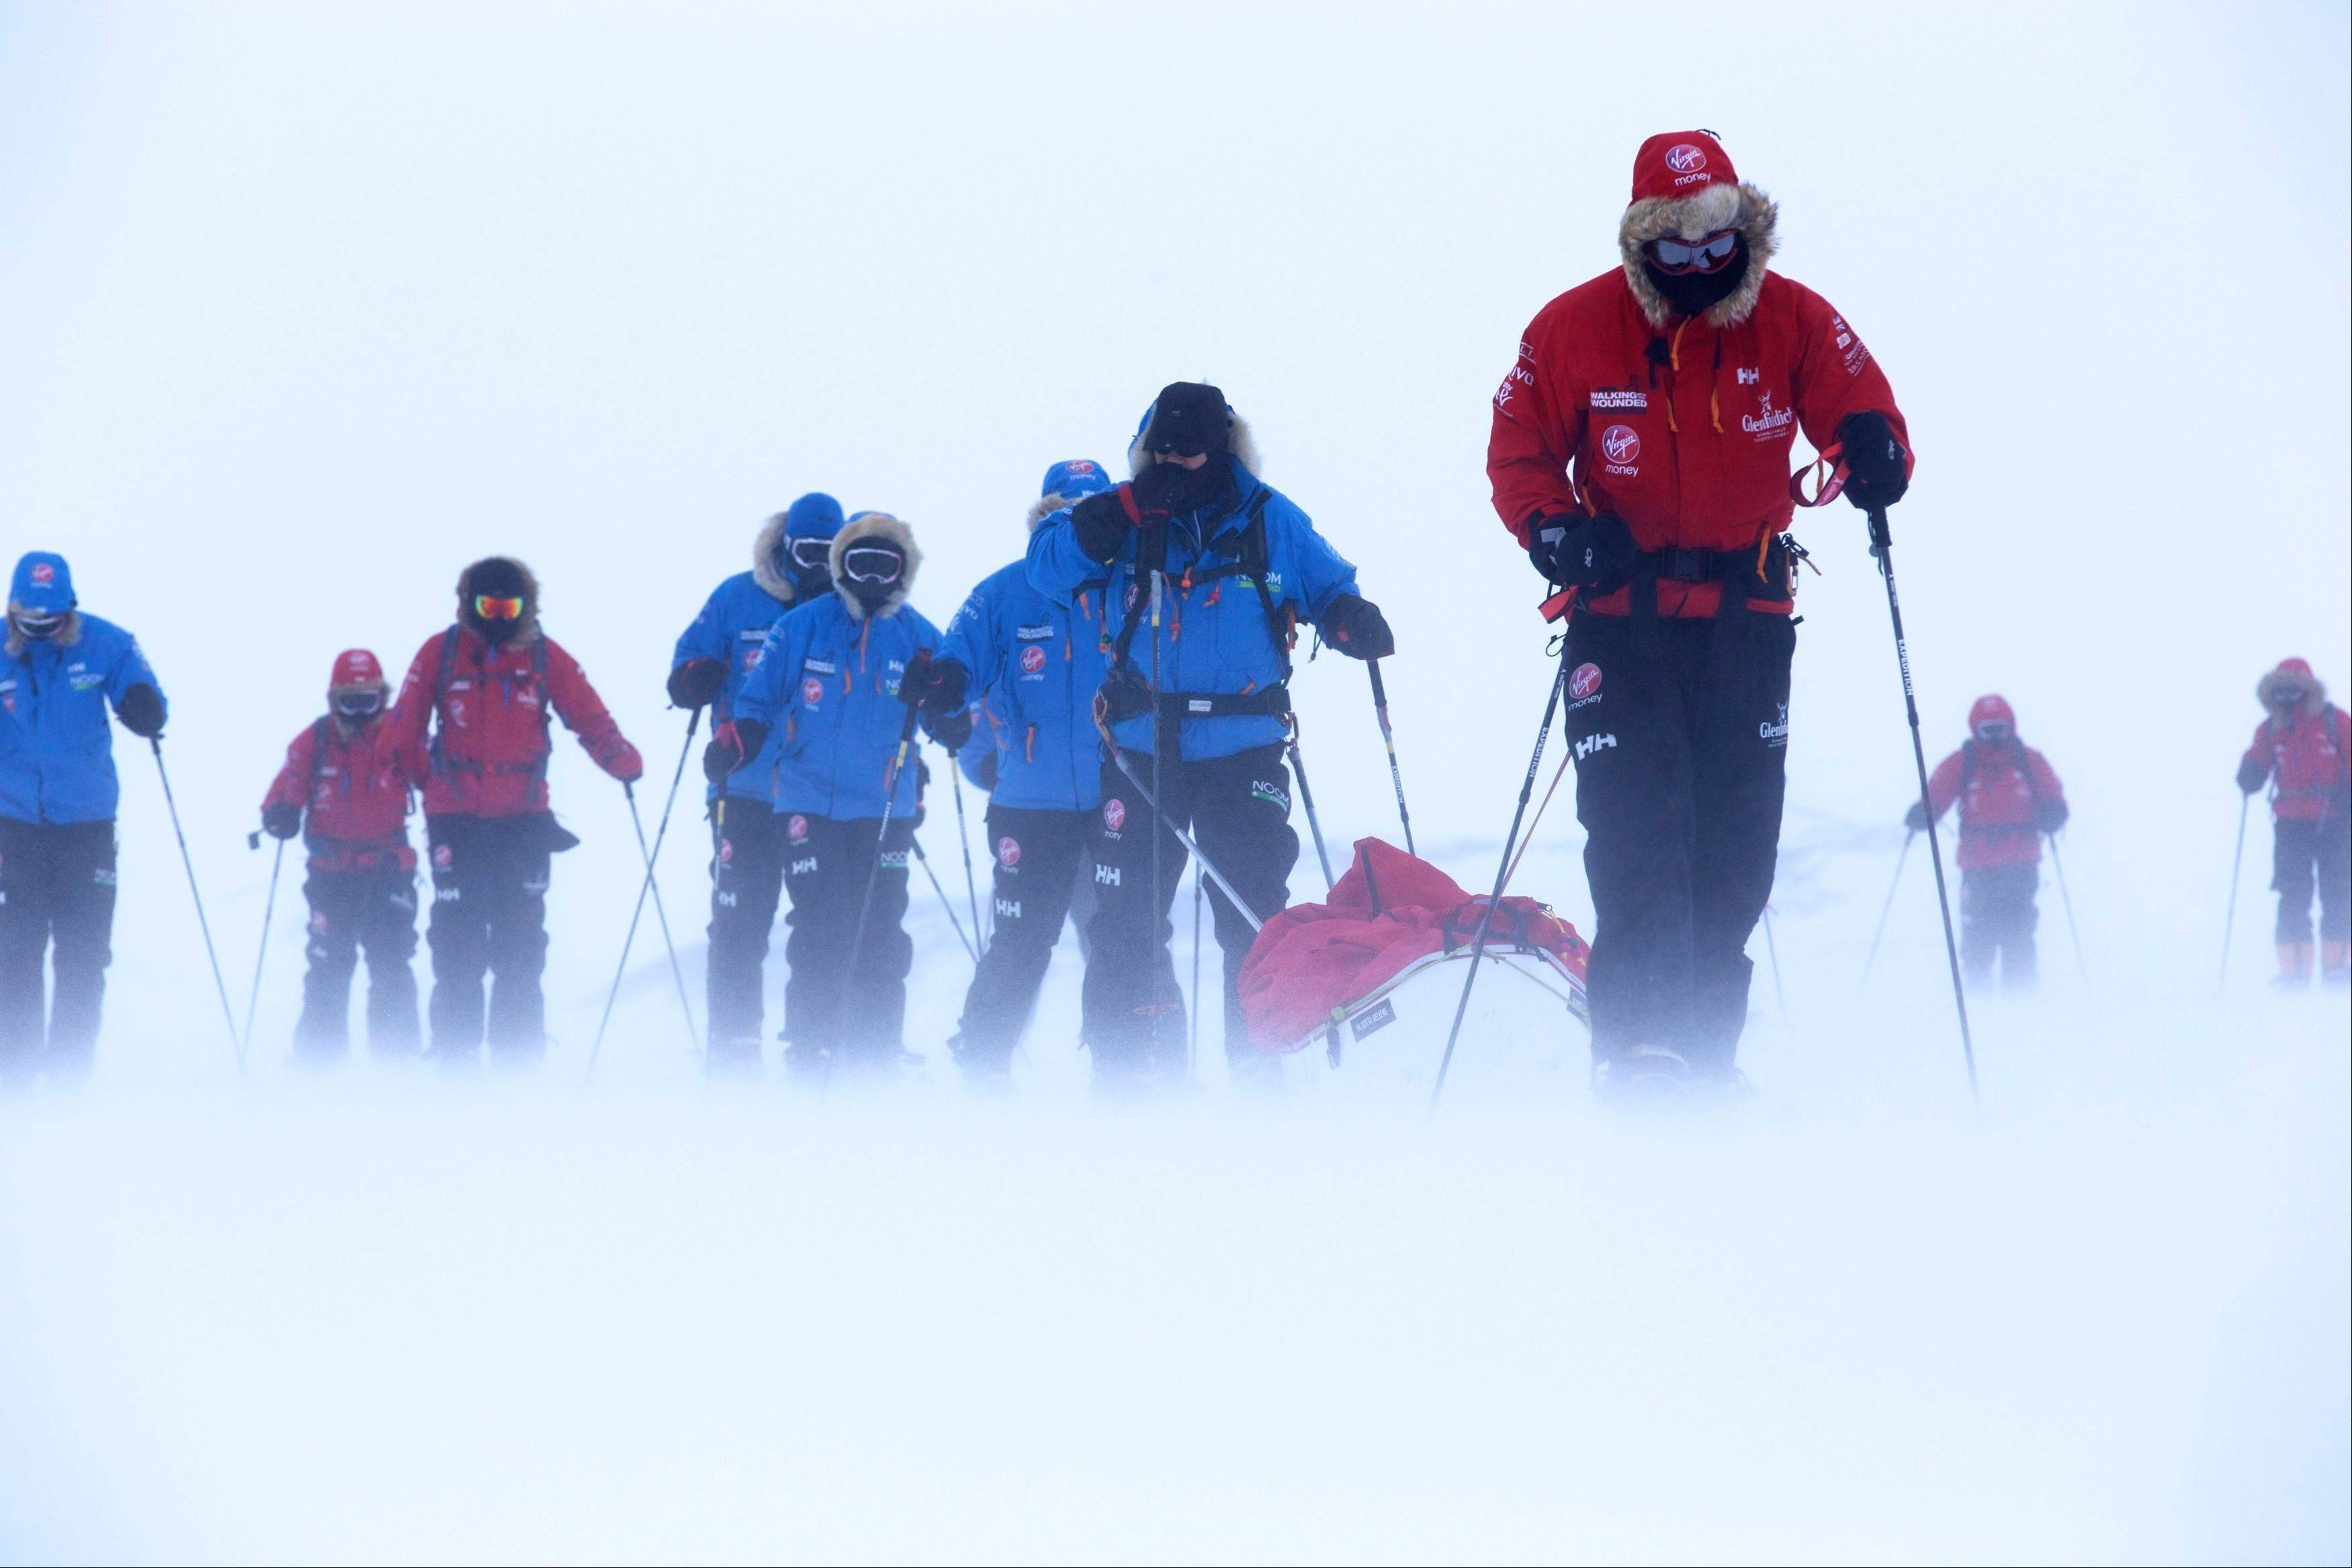 Britain�s Prince Harry, right, during training near Novo, Antarctica, ahead of an Antarctic charity race.